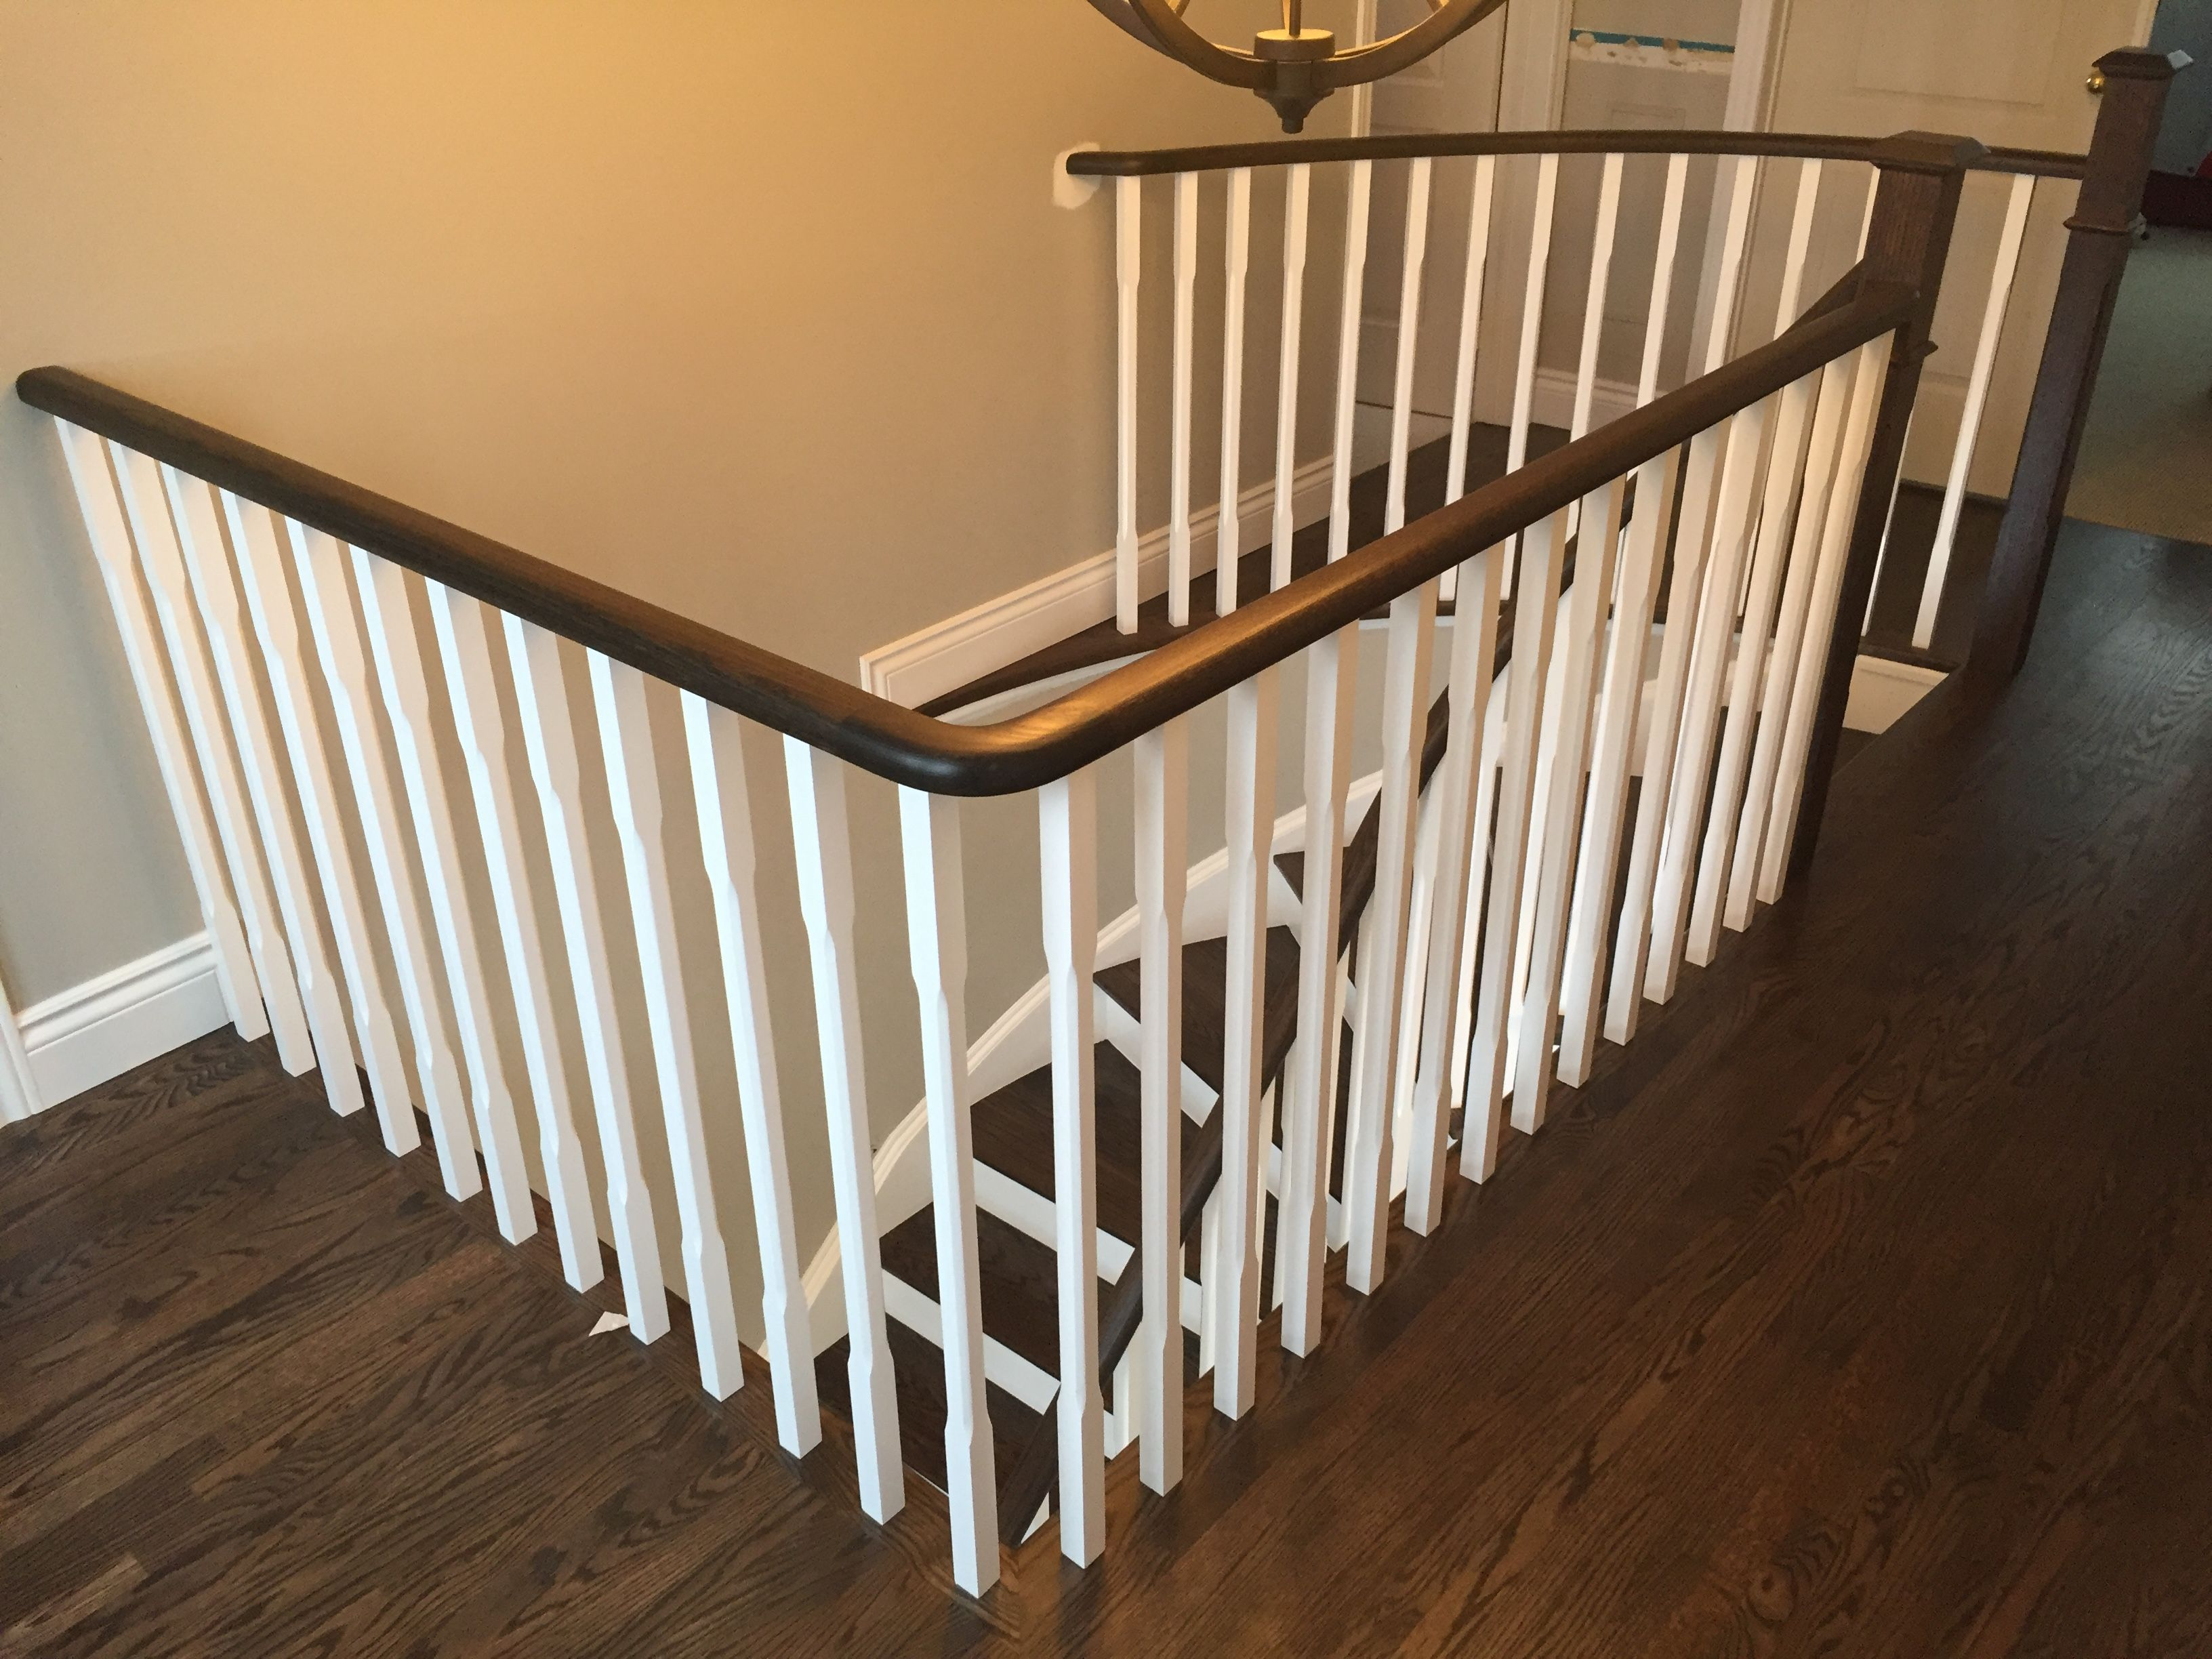 Best Refinishing Hardwood Floors Refinish Staircase 400 x 300